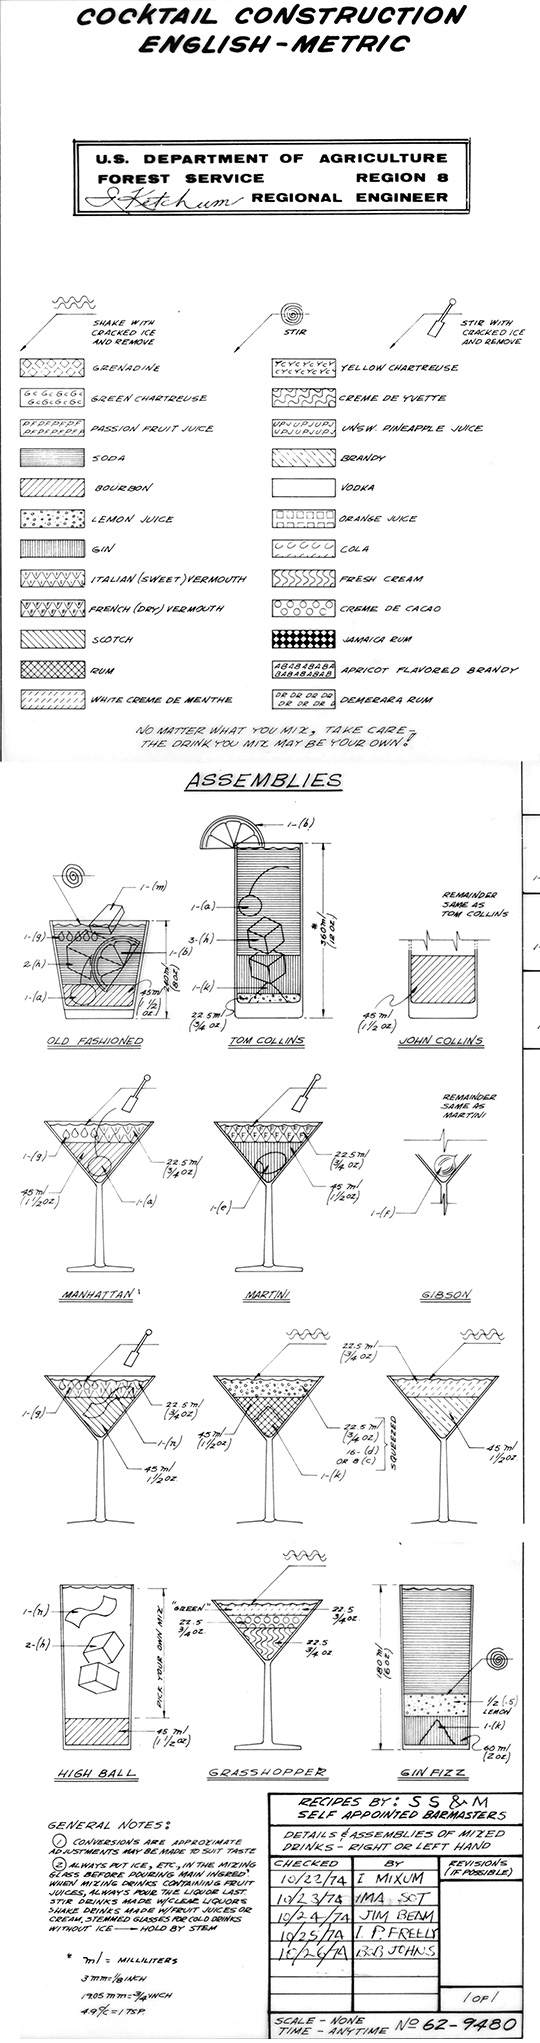 forest service cocktail blueprint